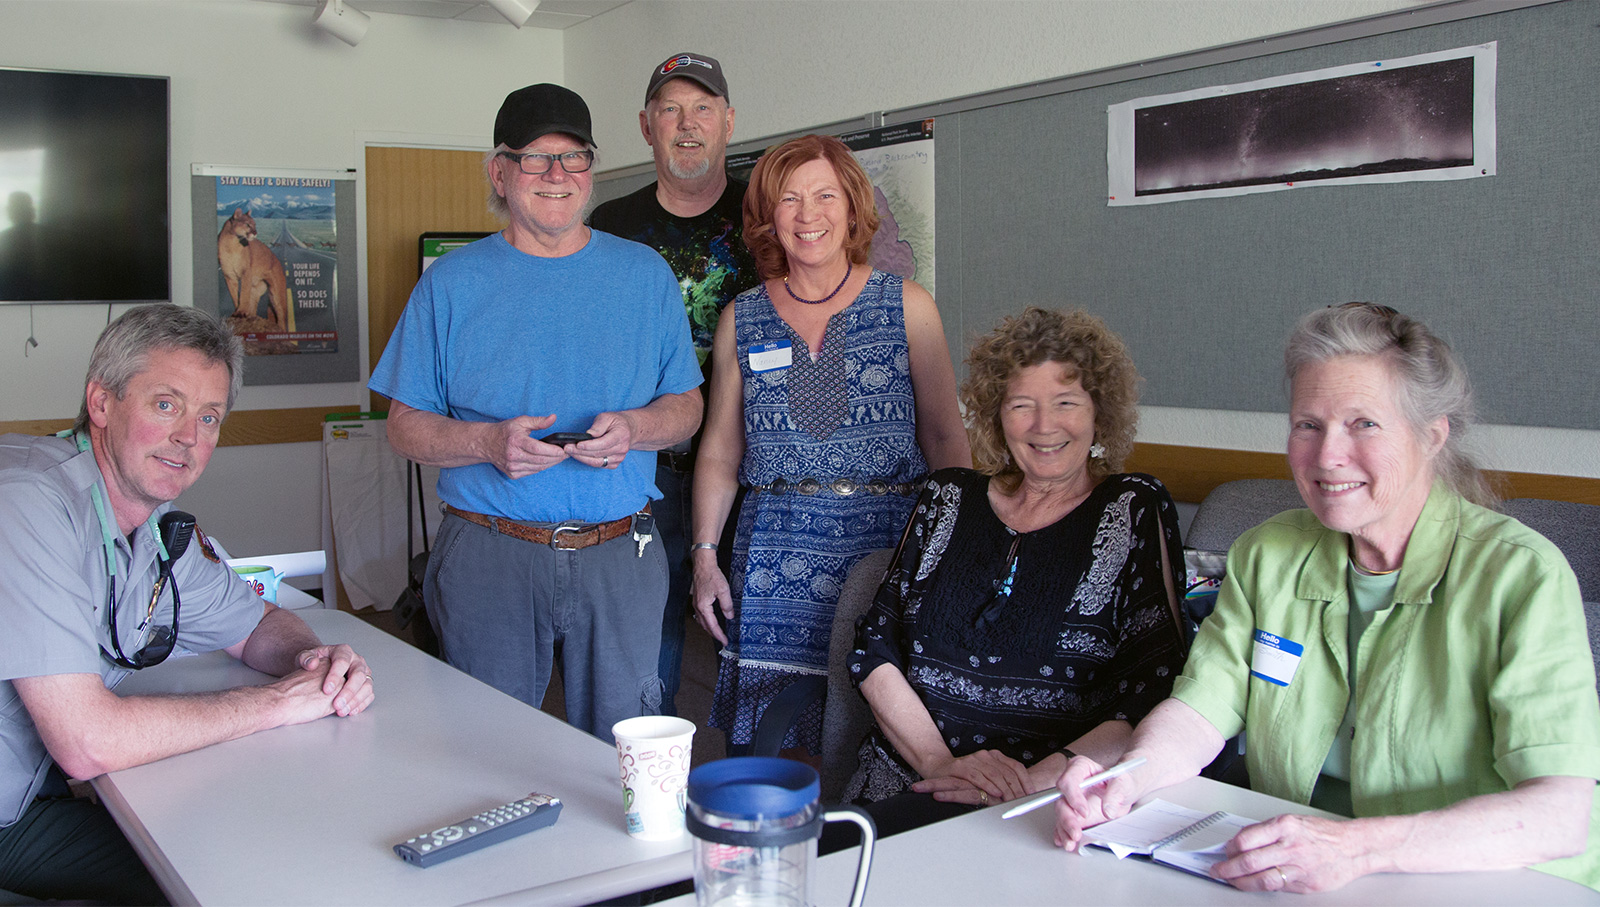 Governance Committee members from left: John White, Jack Zeman, John Barnes, Nancy Starling Ross, Tyra Barnes (Co-Chair), Erin Smith (Chairperson).